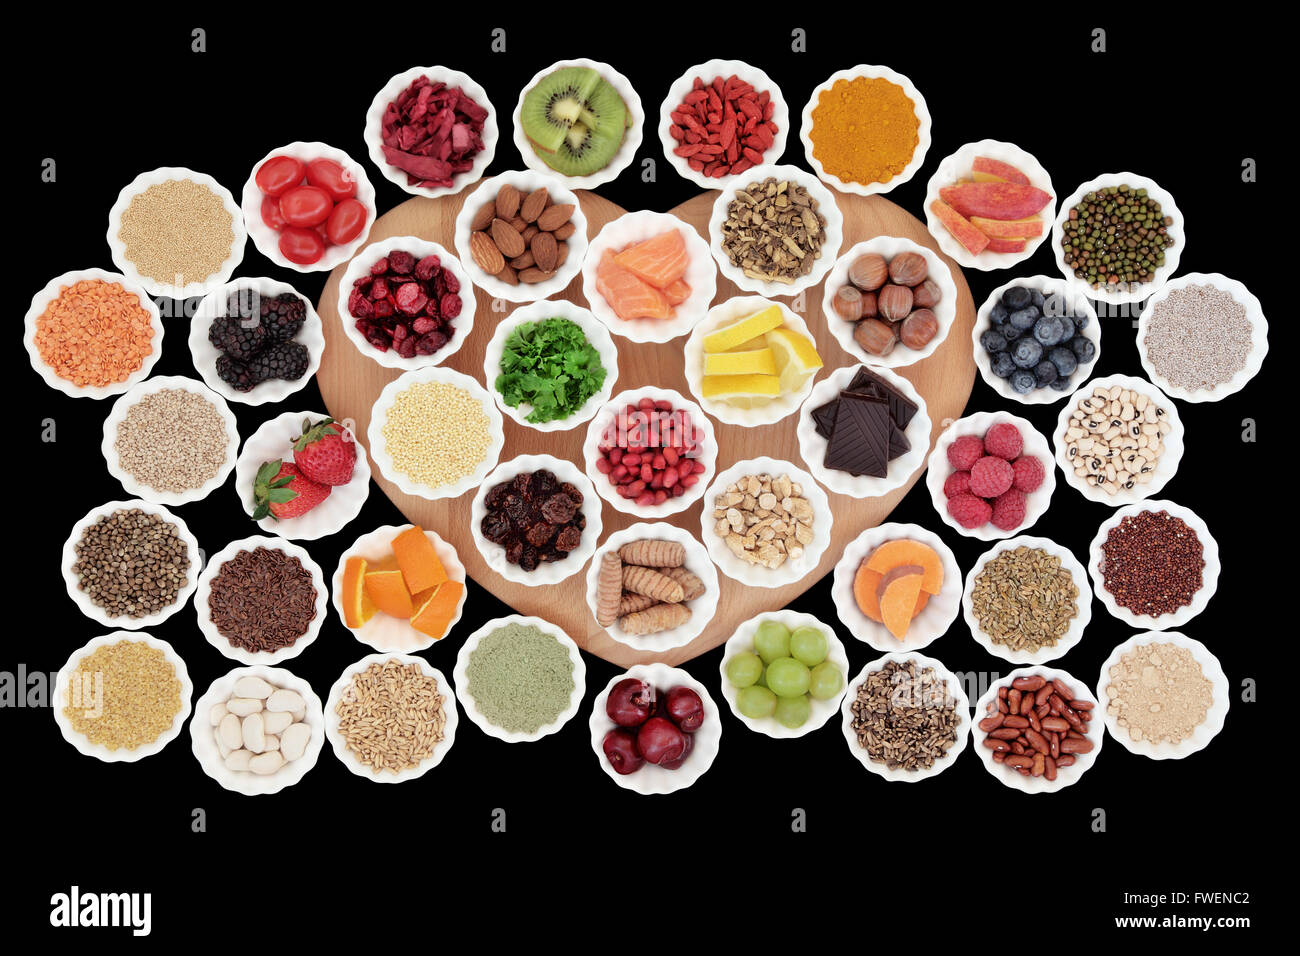 Health and diet super food selection in porcelain crinkle bowls on a heart shaped board. High in vitamins and antioxidants. - Stock Image